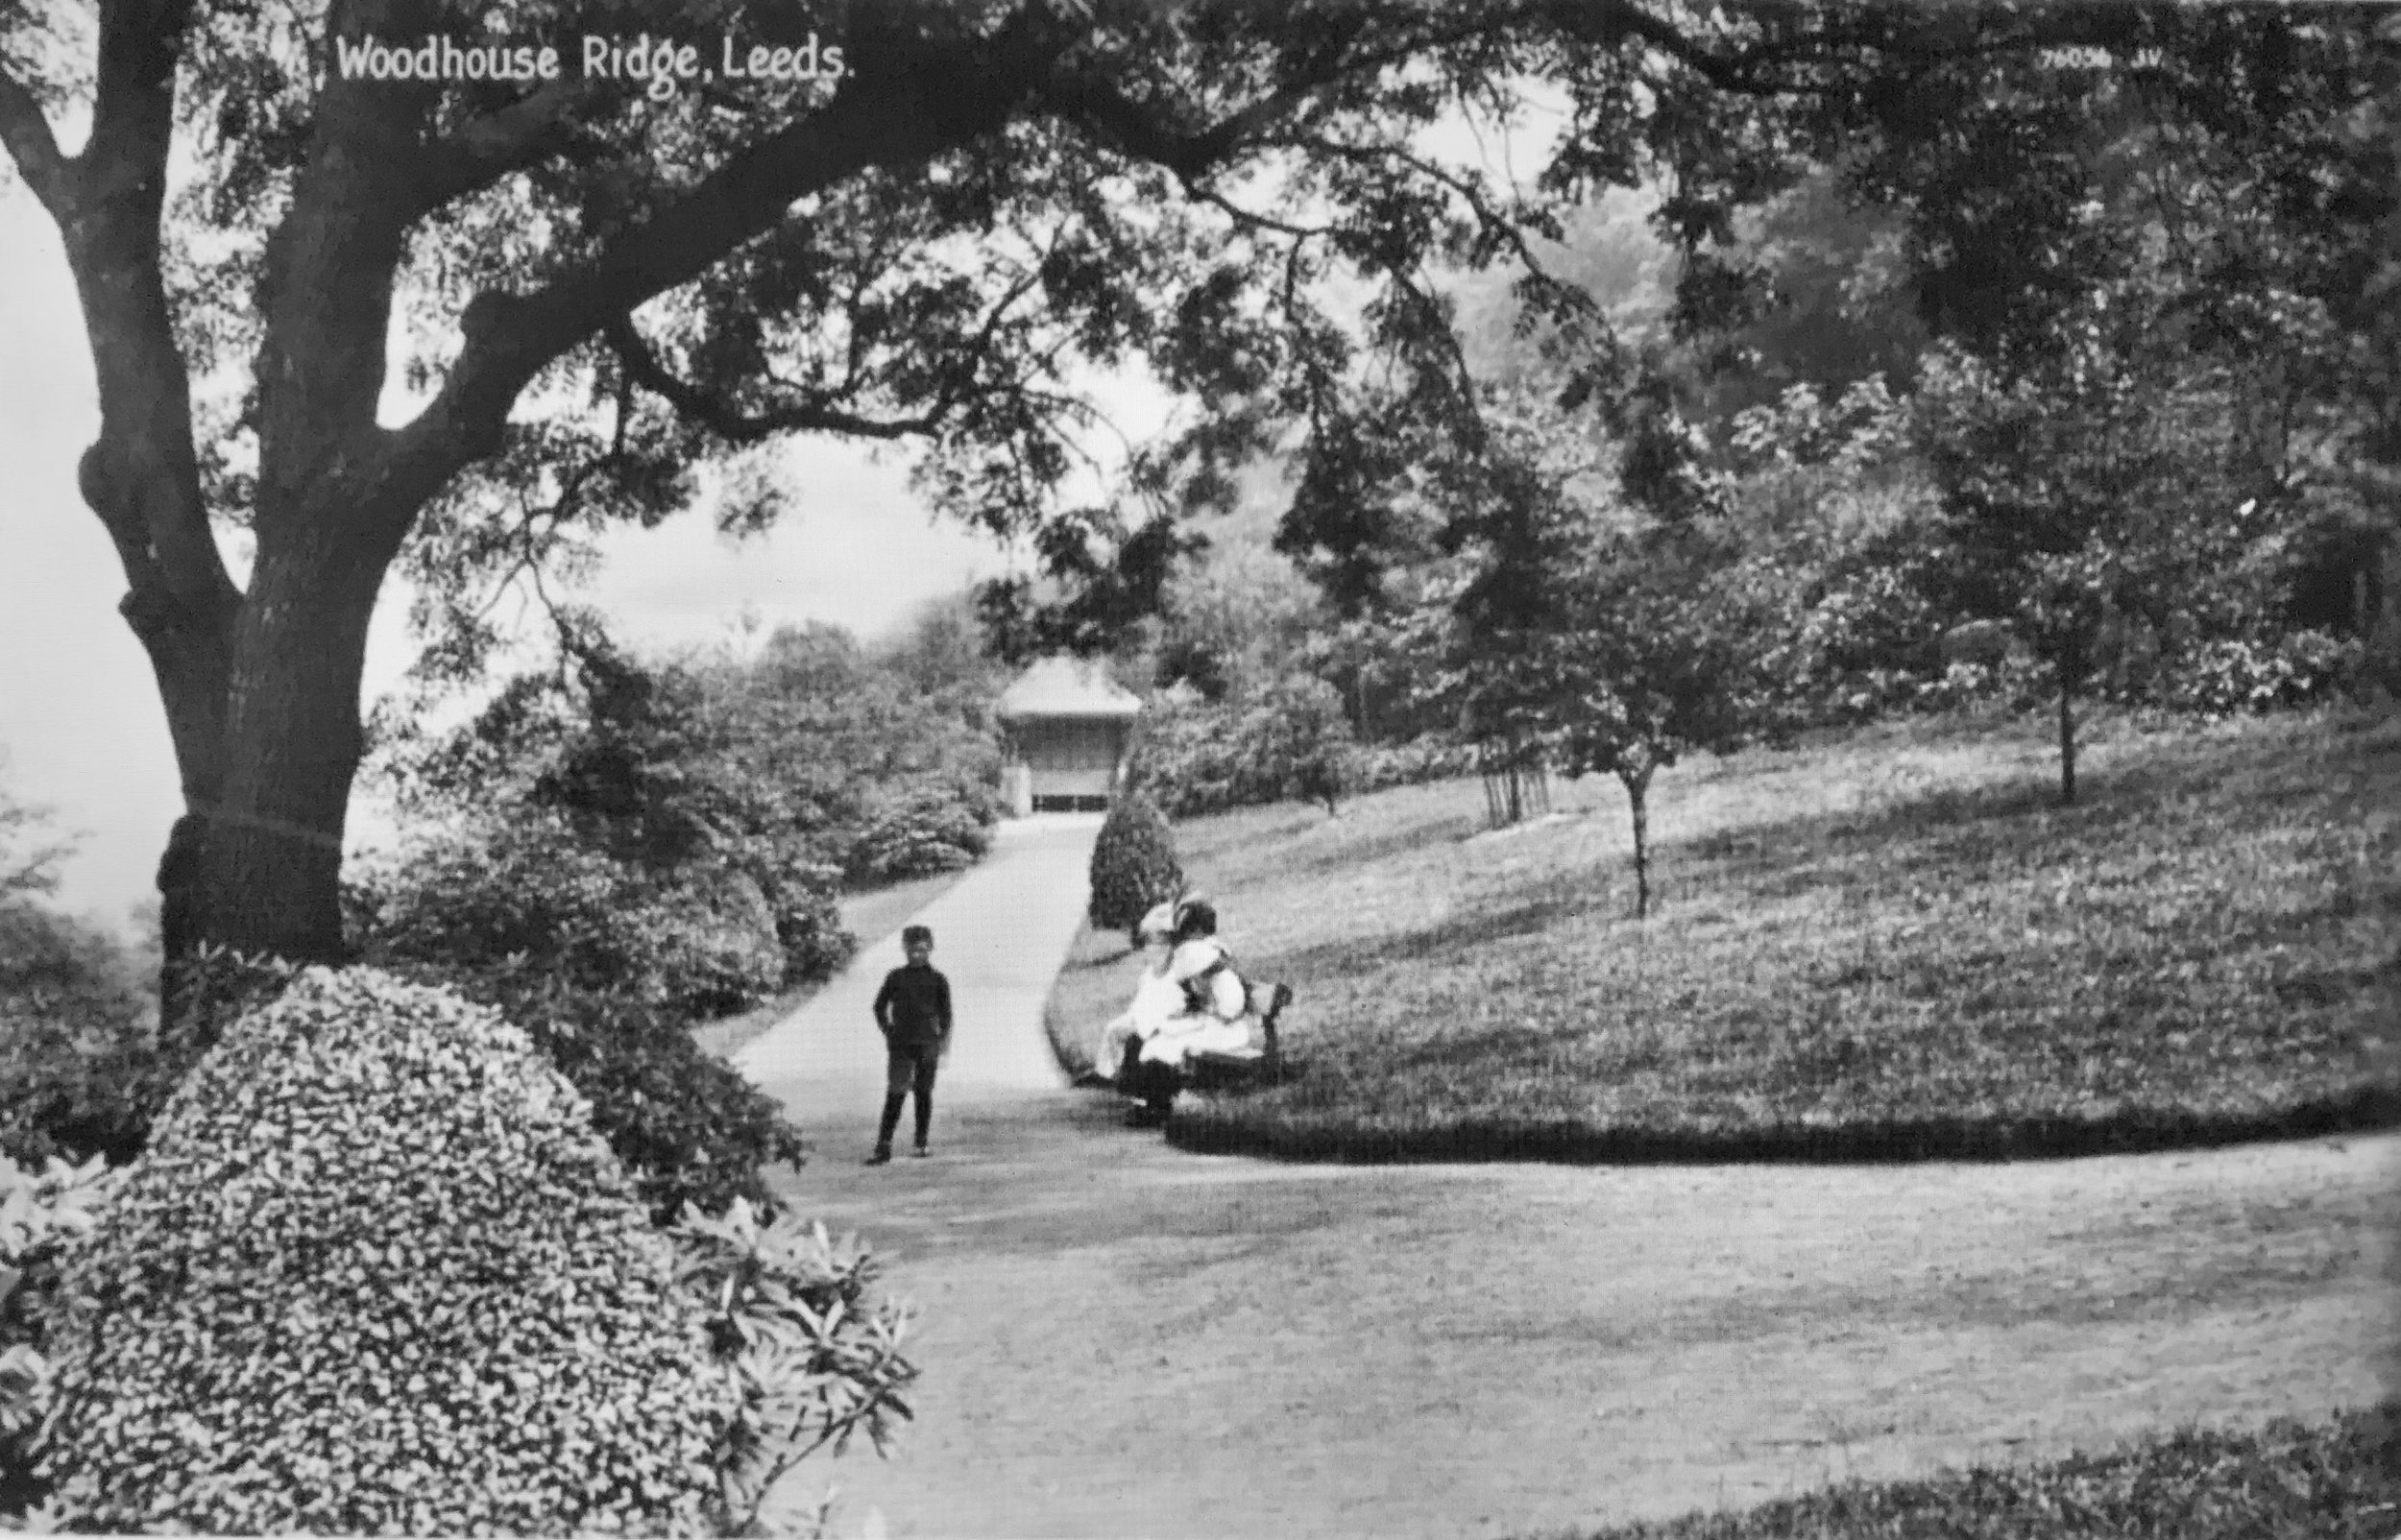 Woodhouse Ridge, with Chinese Pavilion [demolished], undated